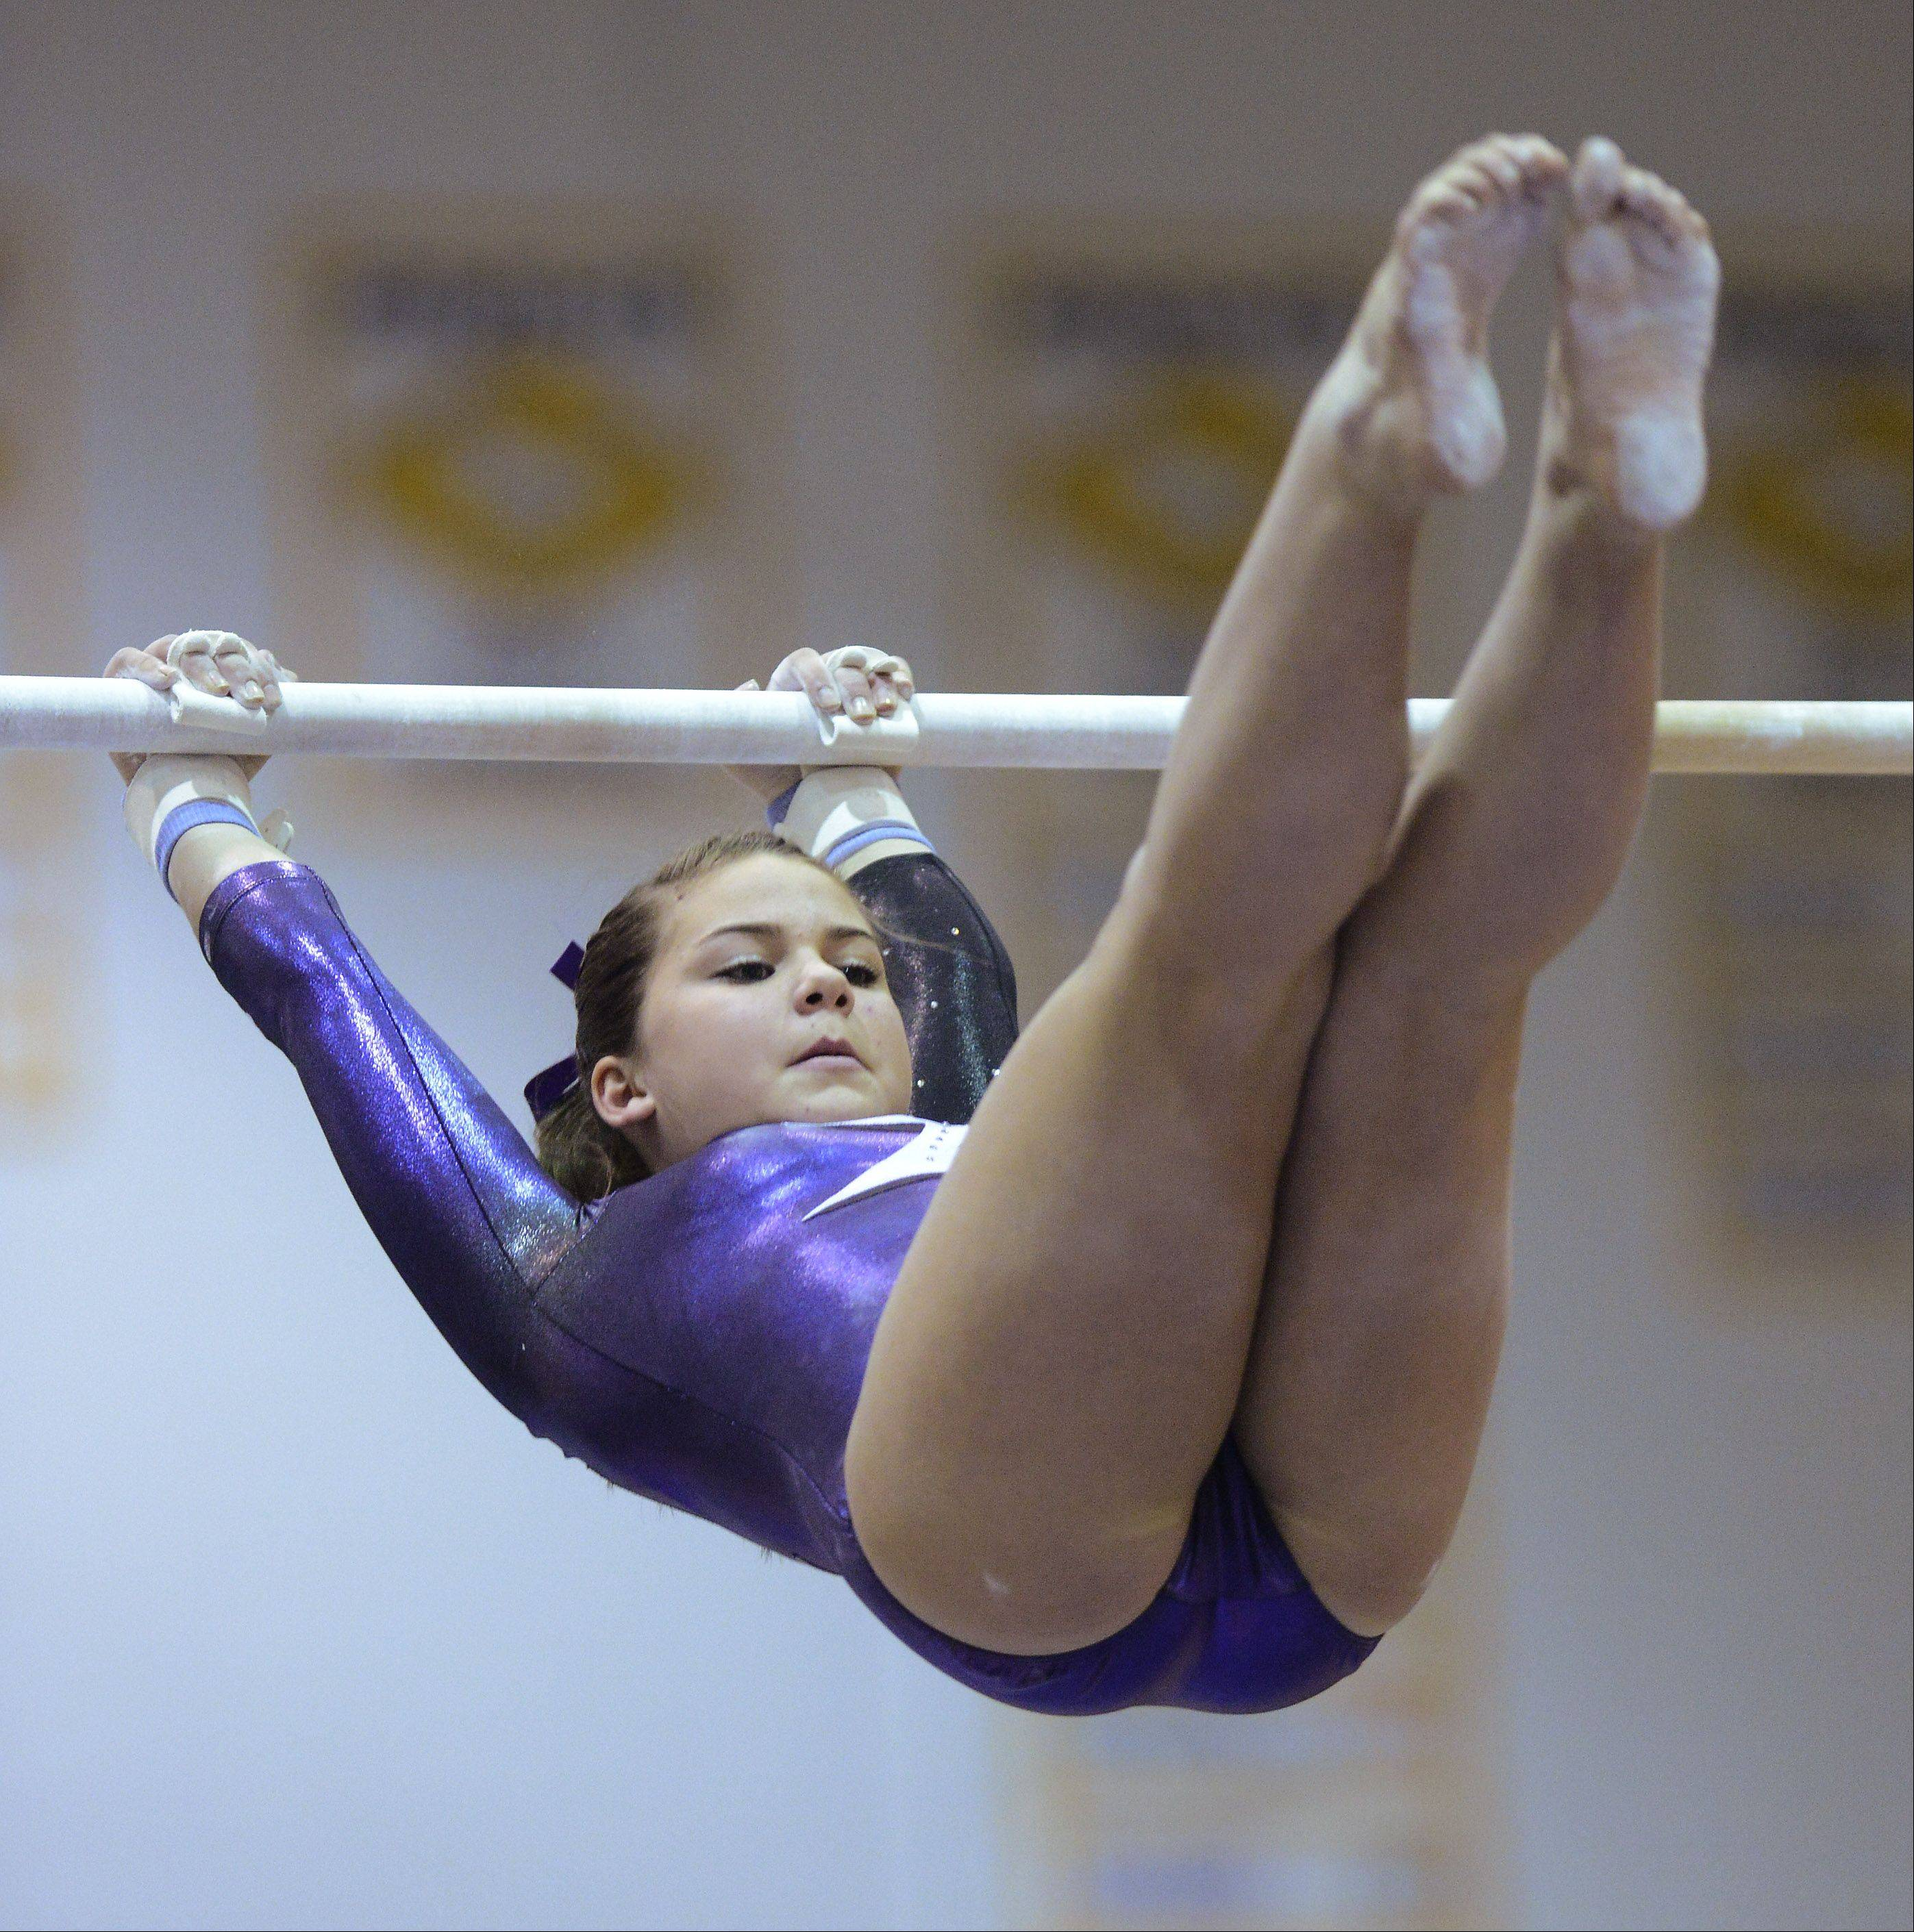 JOE LEWNARD/jlewnard@dailyherald.comRolling Meadows' Kelly Johnston competes on the uneven parallel bars during the Al Galatte girls gymnastics invitational Rolling Meadows Saturday.